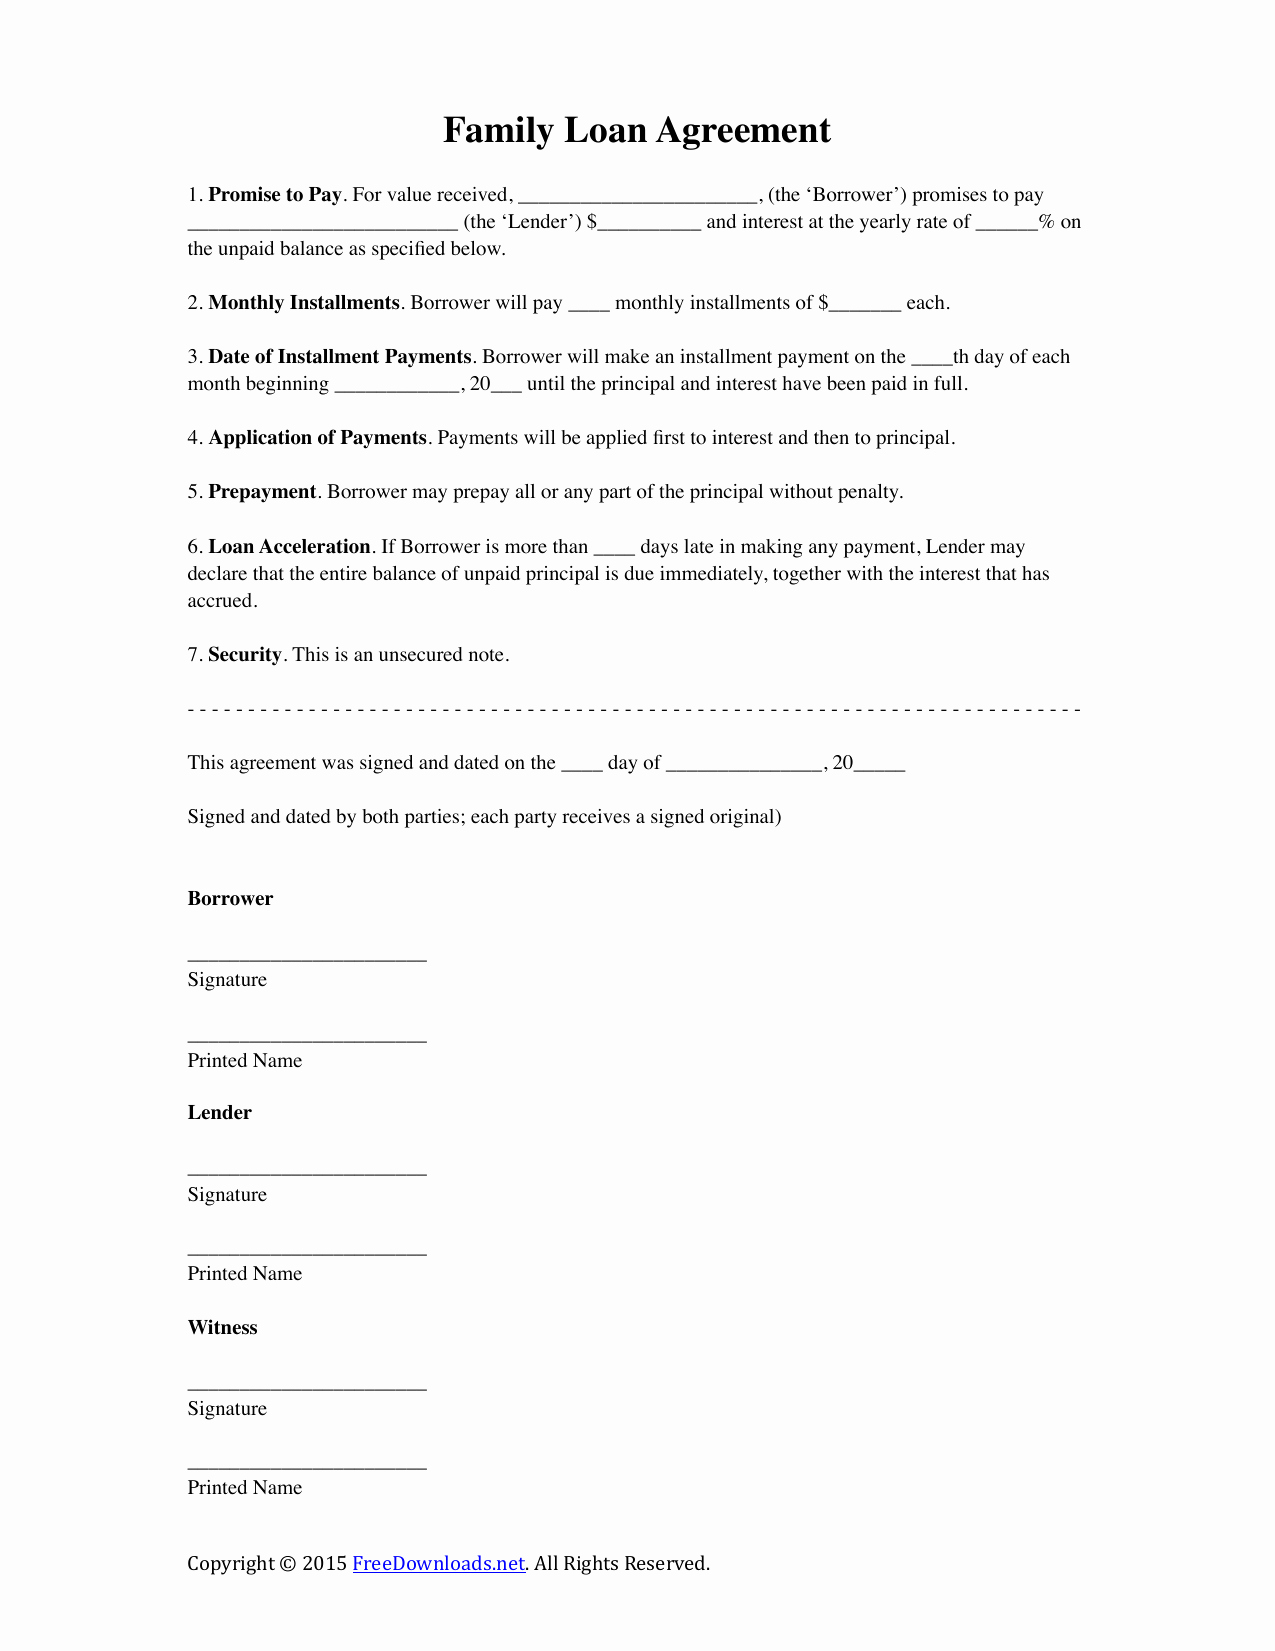 Download Family Loan Agreement Template Pdf Rtf